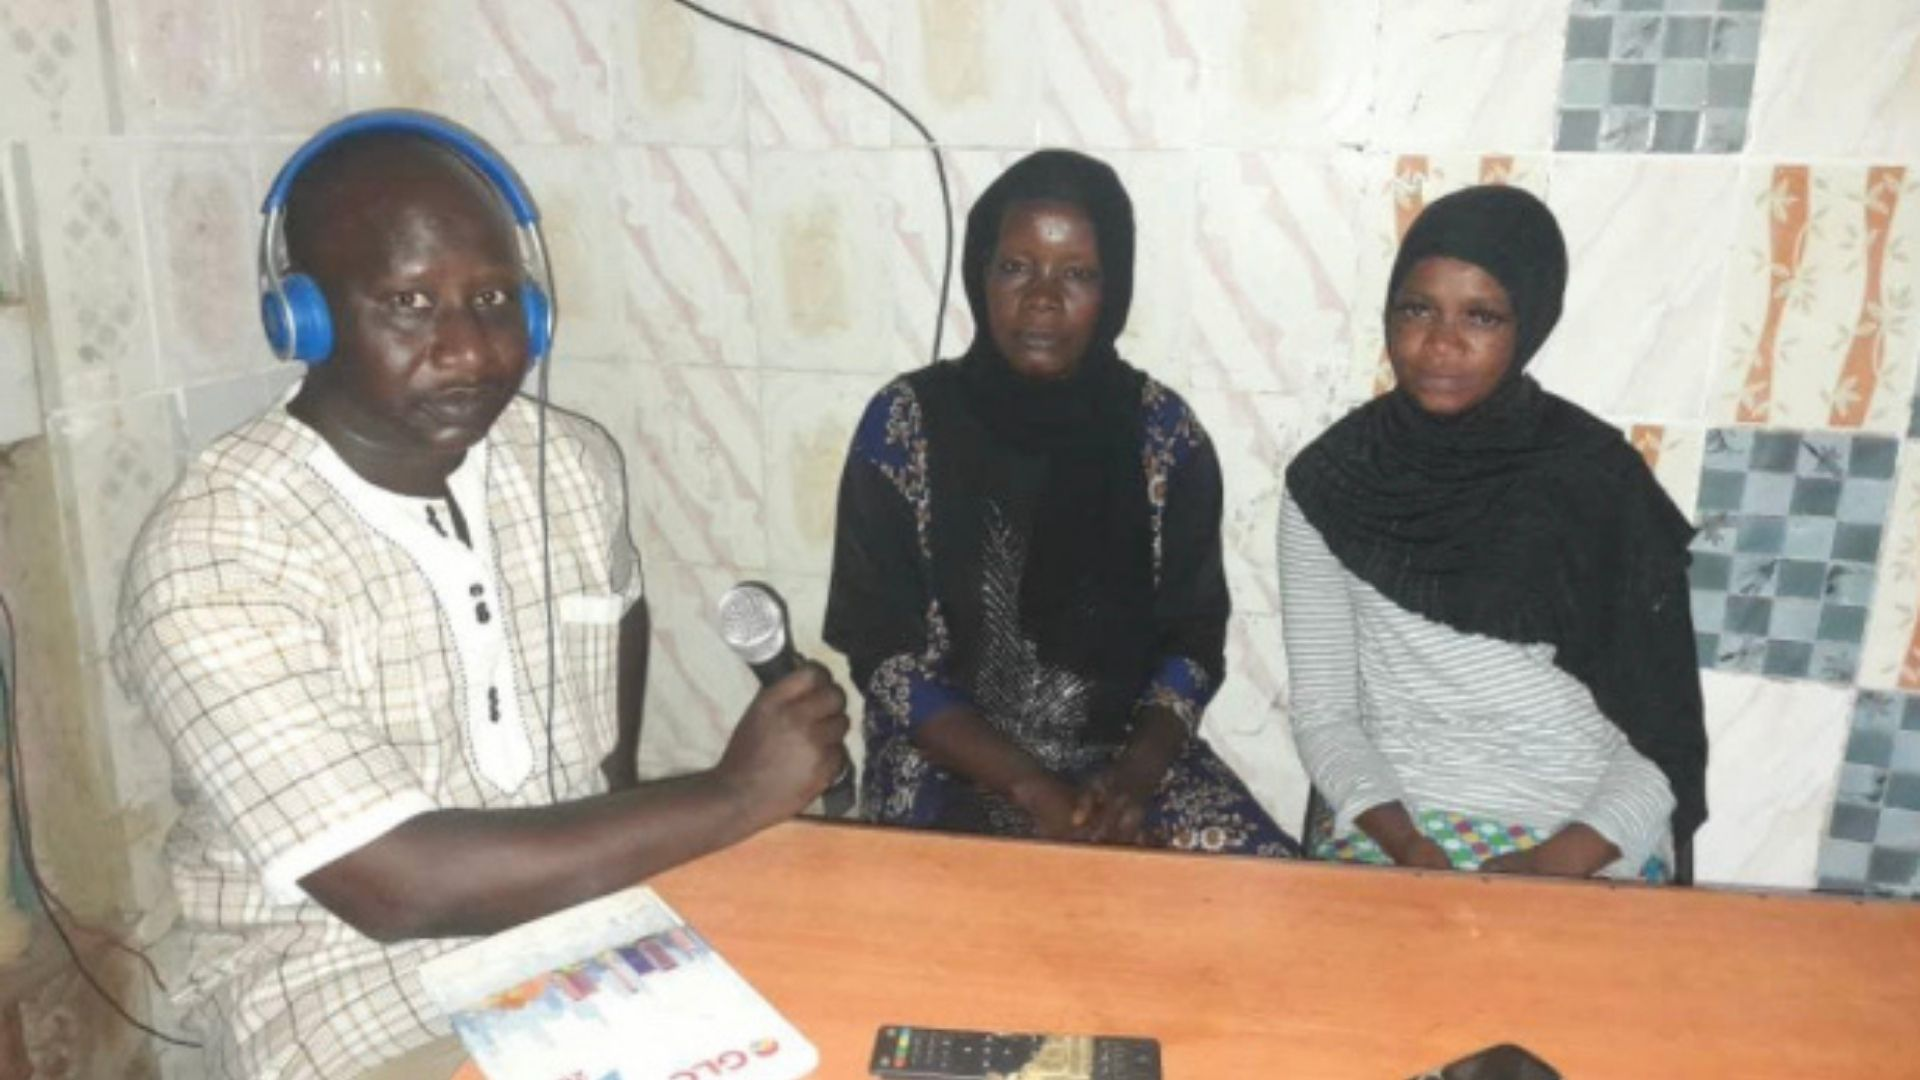 Female Cutter Speaks Out on the Radio in Ebrima Saidkhan, The Gambia